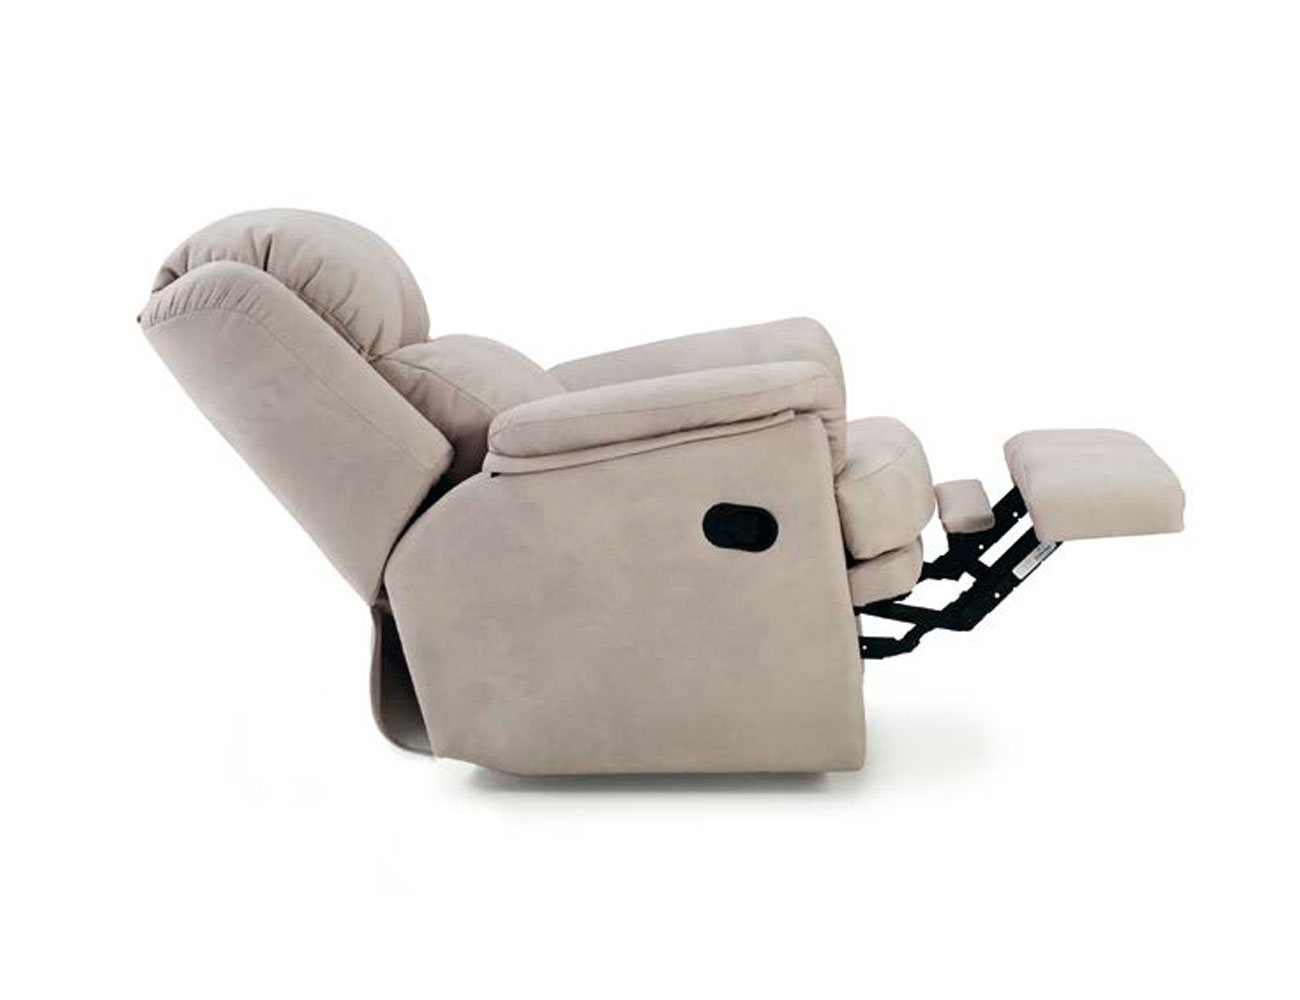 Sillon relax manual palanca esther 11